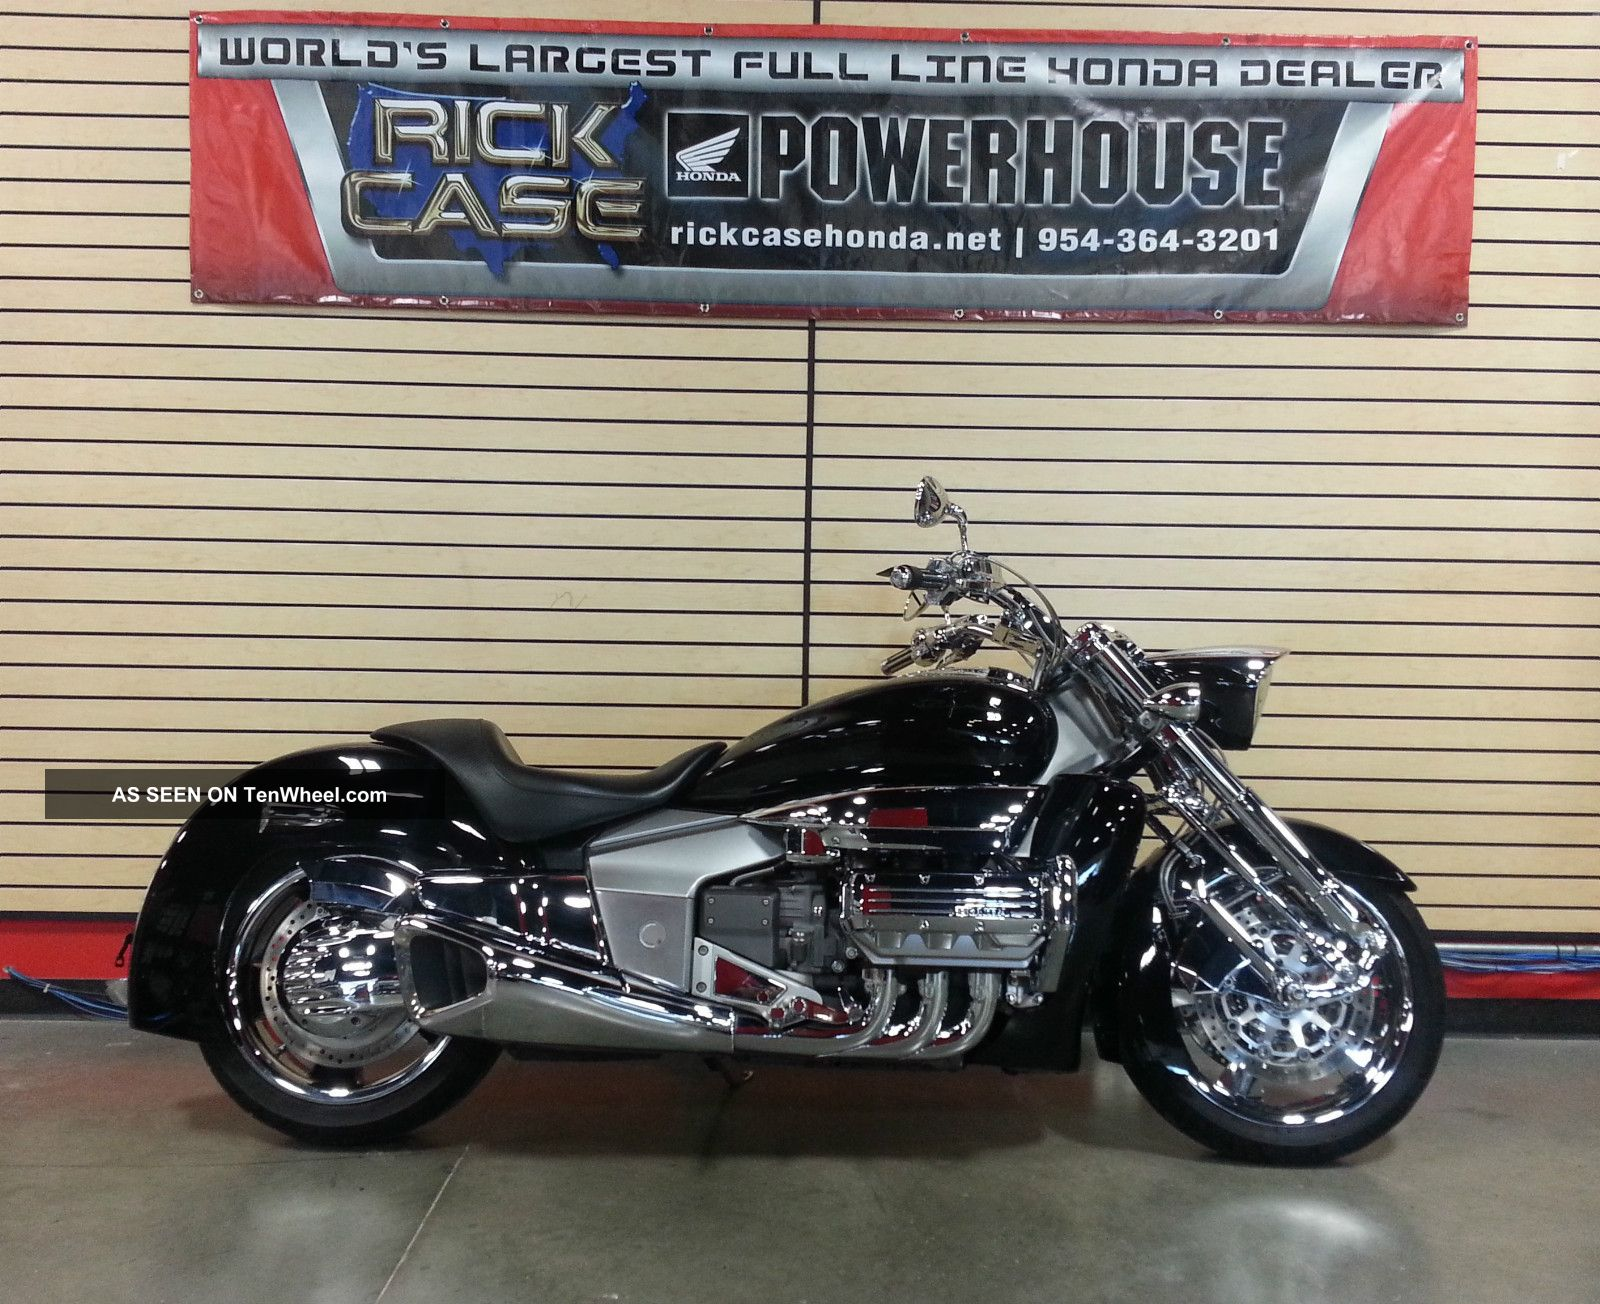 2005 Honda Vtx 1300r Cruiser 75274 furthermore Motorcycle Brand List 19 4 furthermore Honda 2003 Hawaii moreover 2005 Honda Vtx 1300 R 258776 together with Sum2010. on silver vtx 1800c